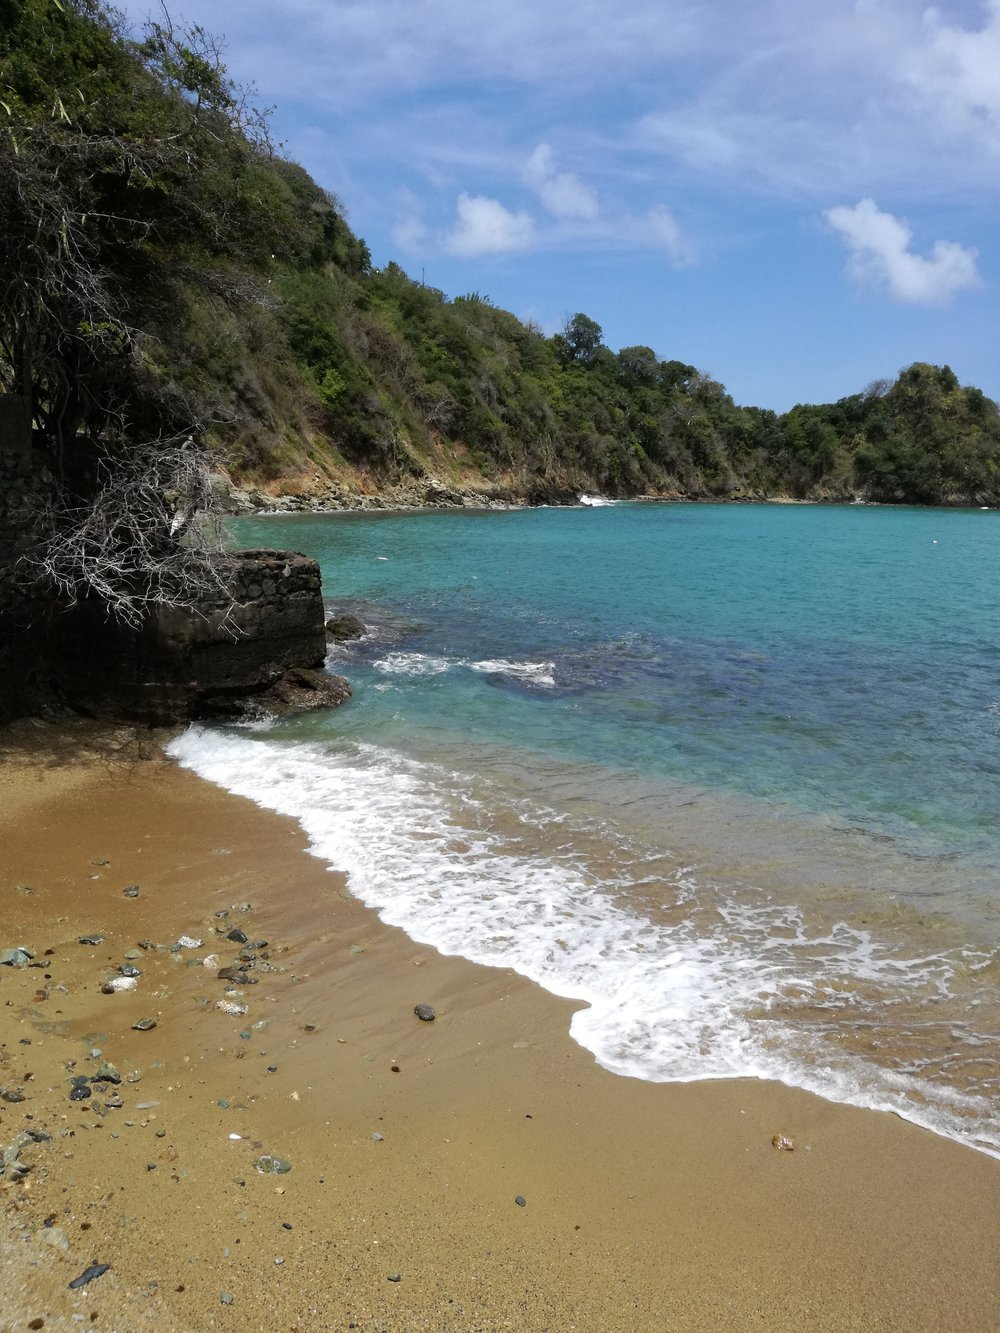 This is the beach opposite the site, and it's a perfect place for a picnic..so come prepared!